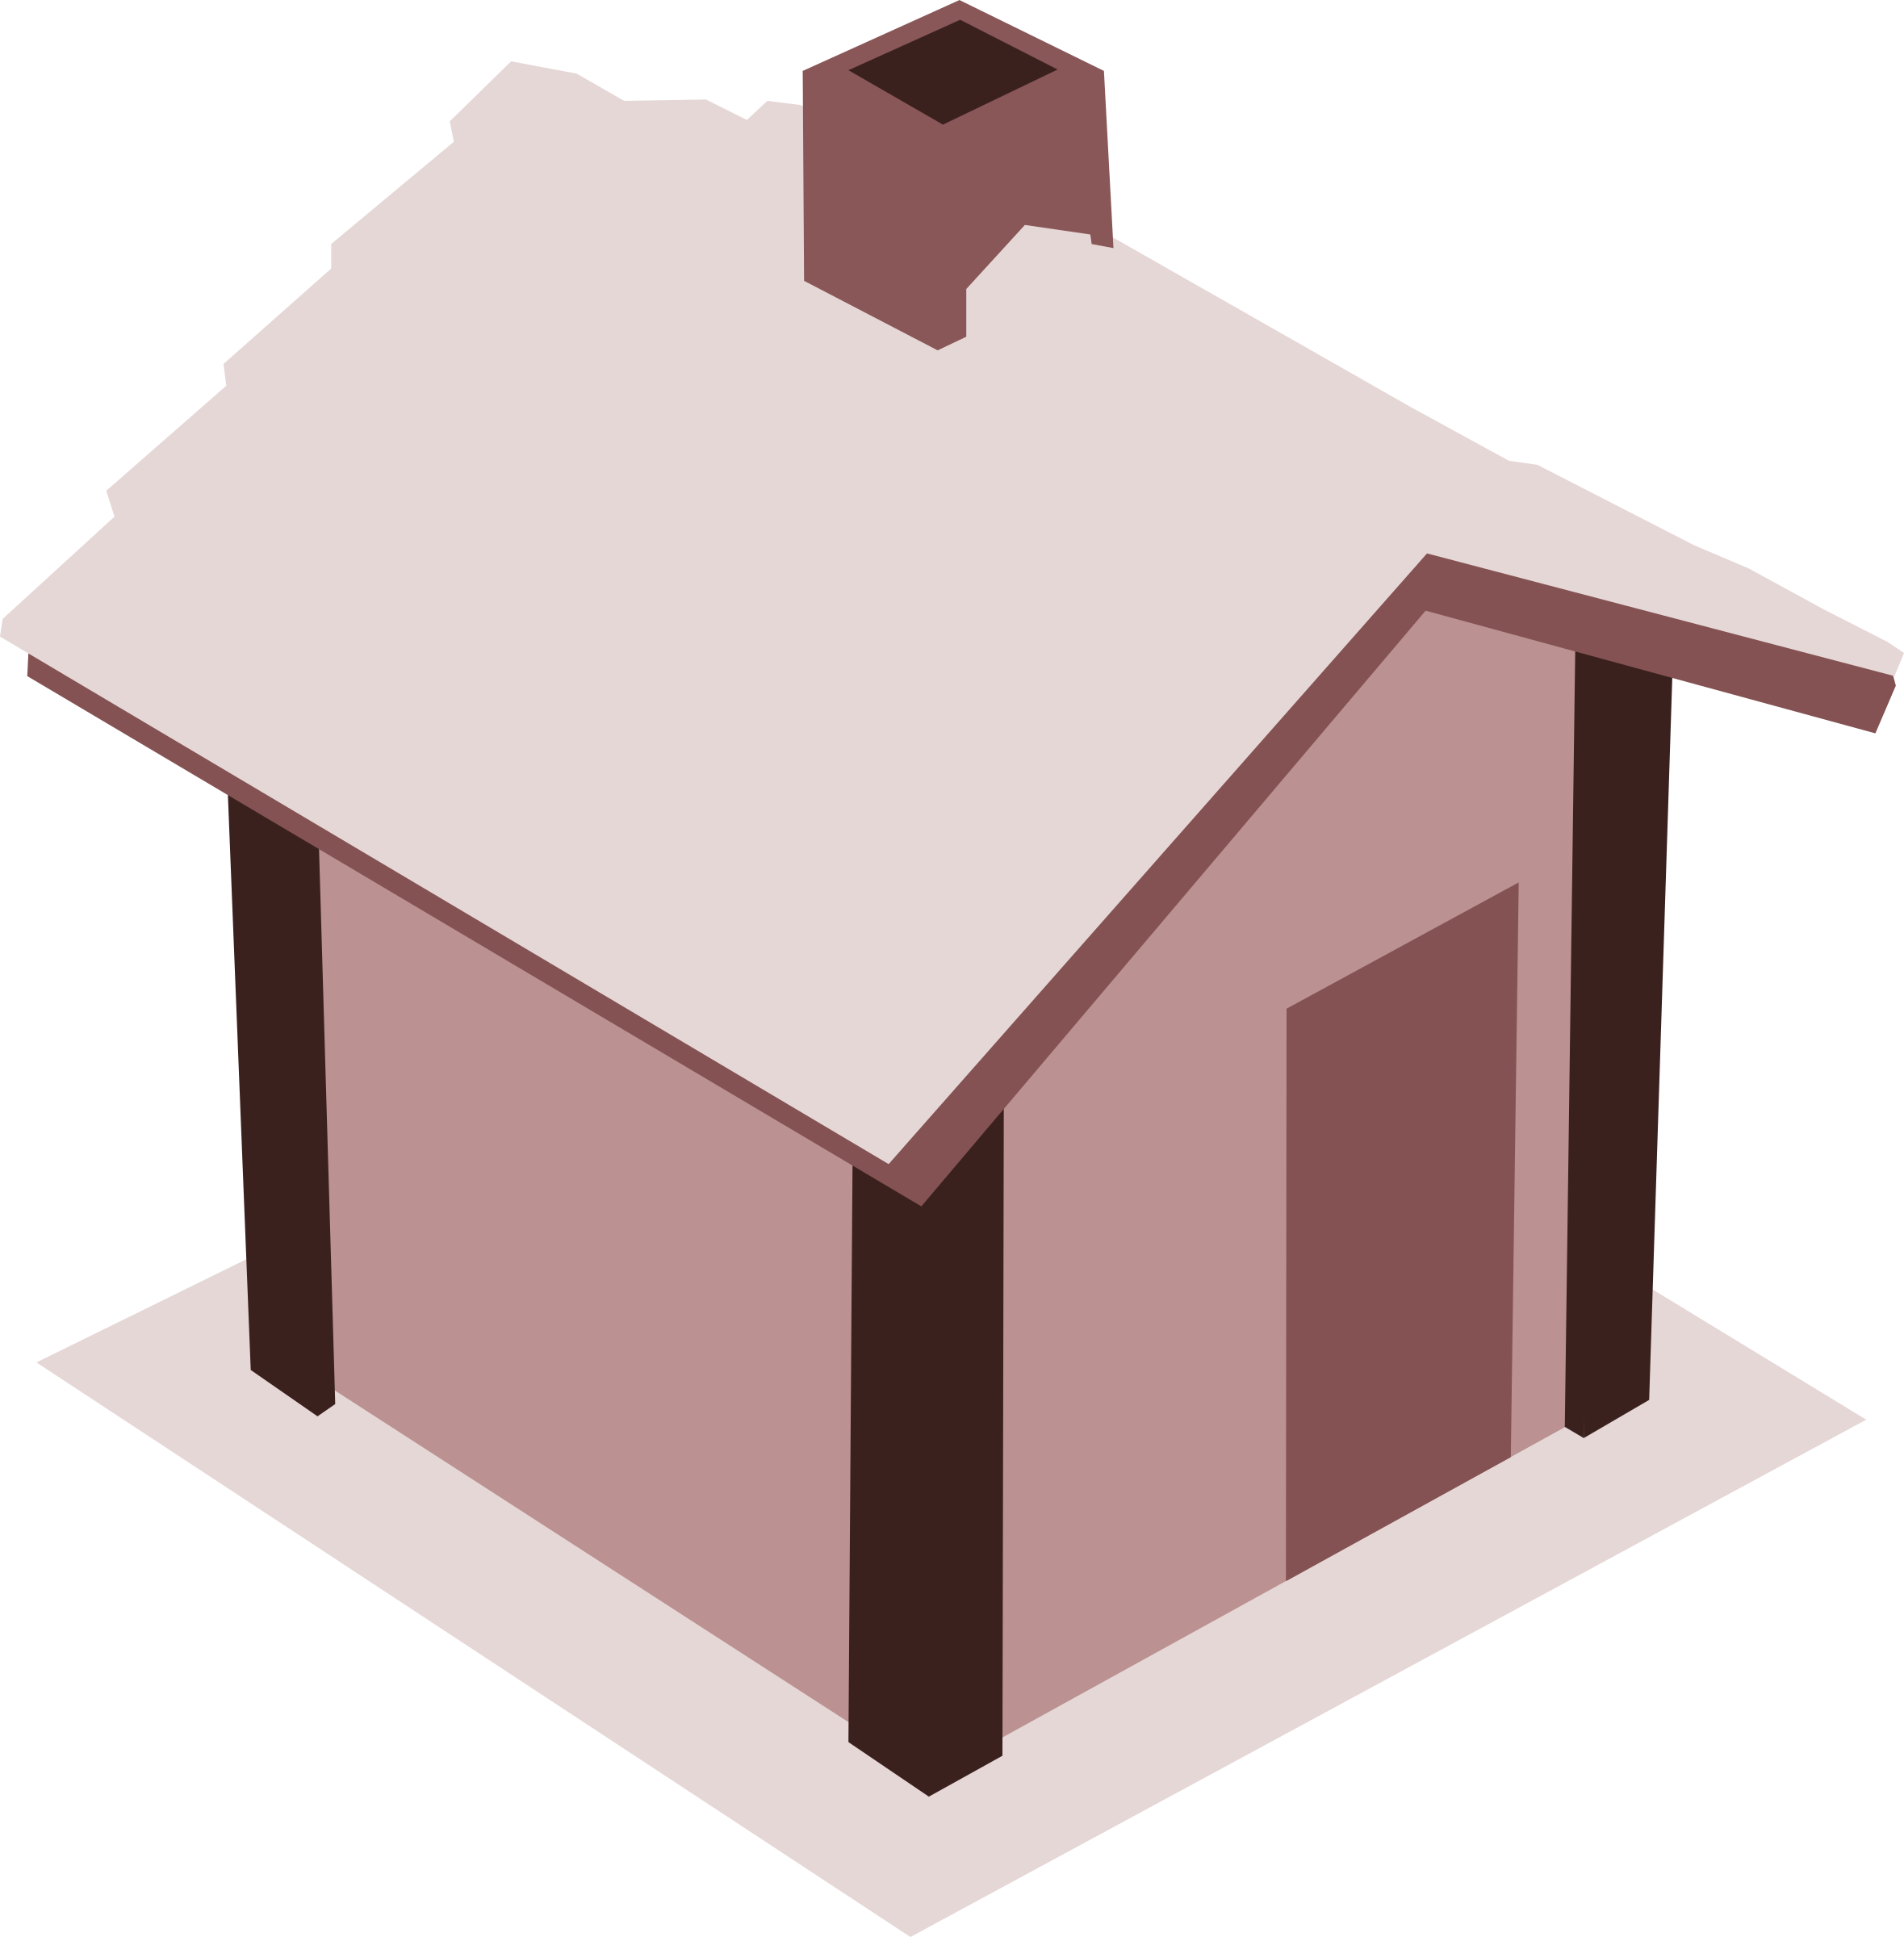 Simple house clipart picture library stock Clipart - Simple house picture library stock